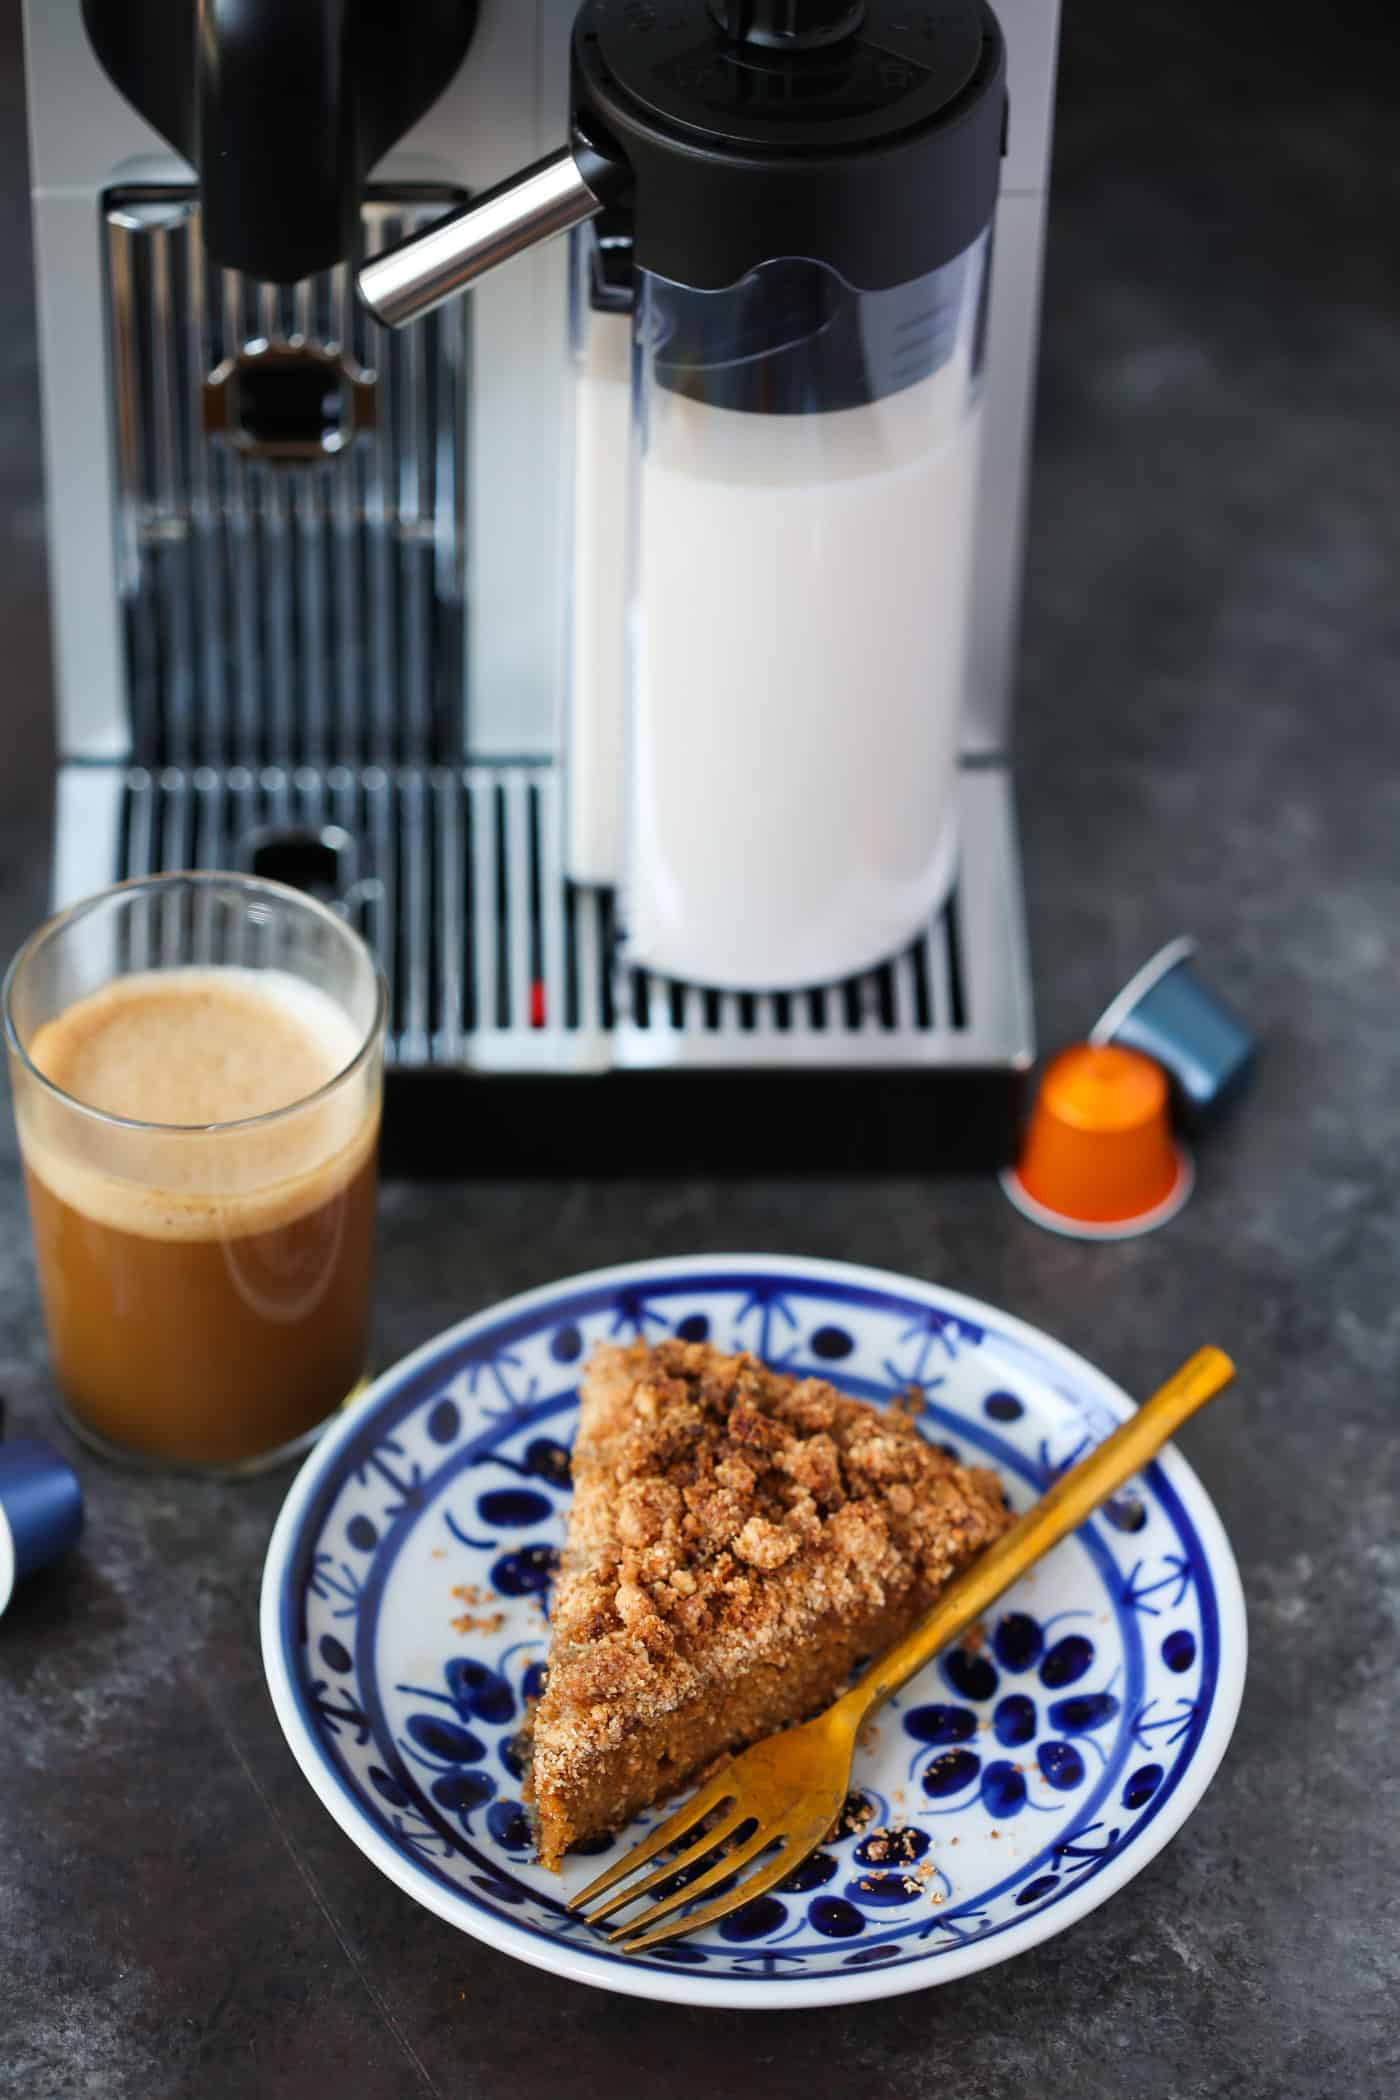 Who is ready for fall baking? How about starting off with this Gluten-Free Pumpkin Coffee Cake? It's made with almond and coconut flour, pumpkin puree and flavourful spices.